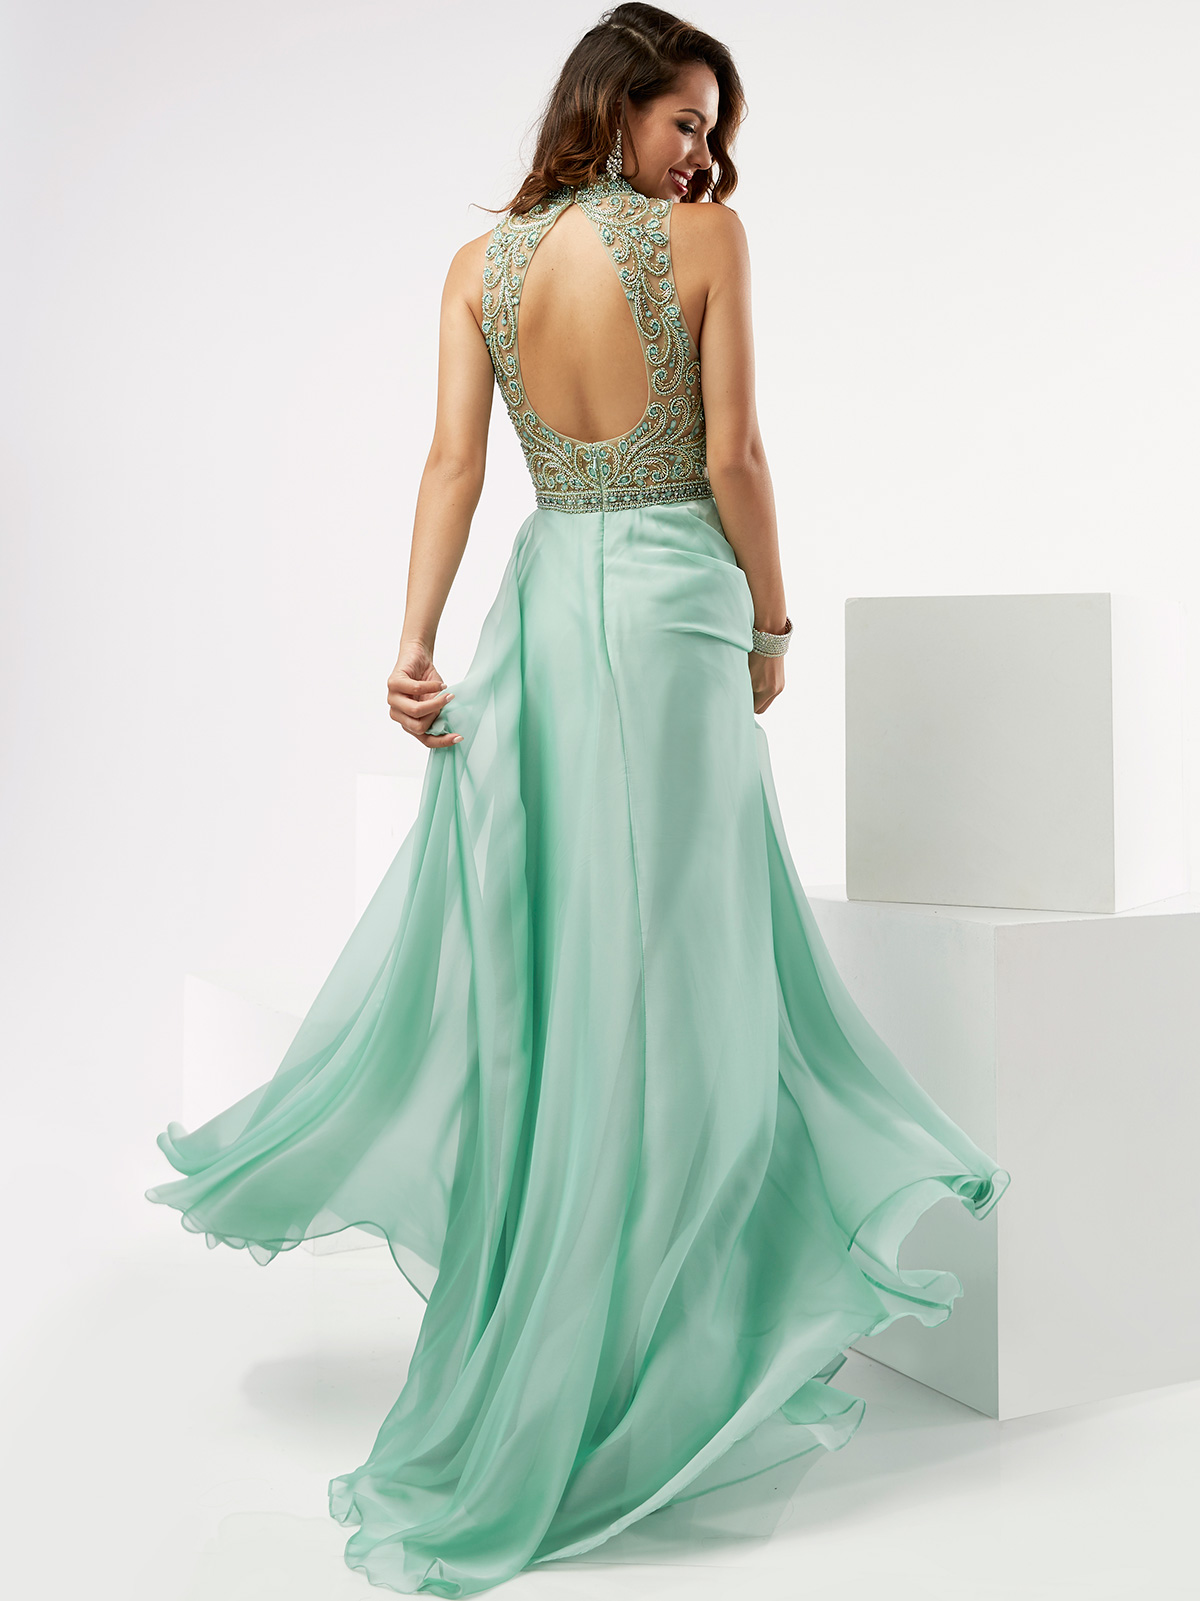 Jasz Couture 5979 High Neck Beaded Prom Gown DimitraDesigns.com